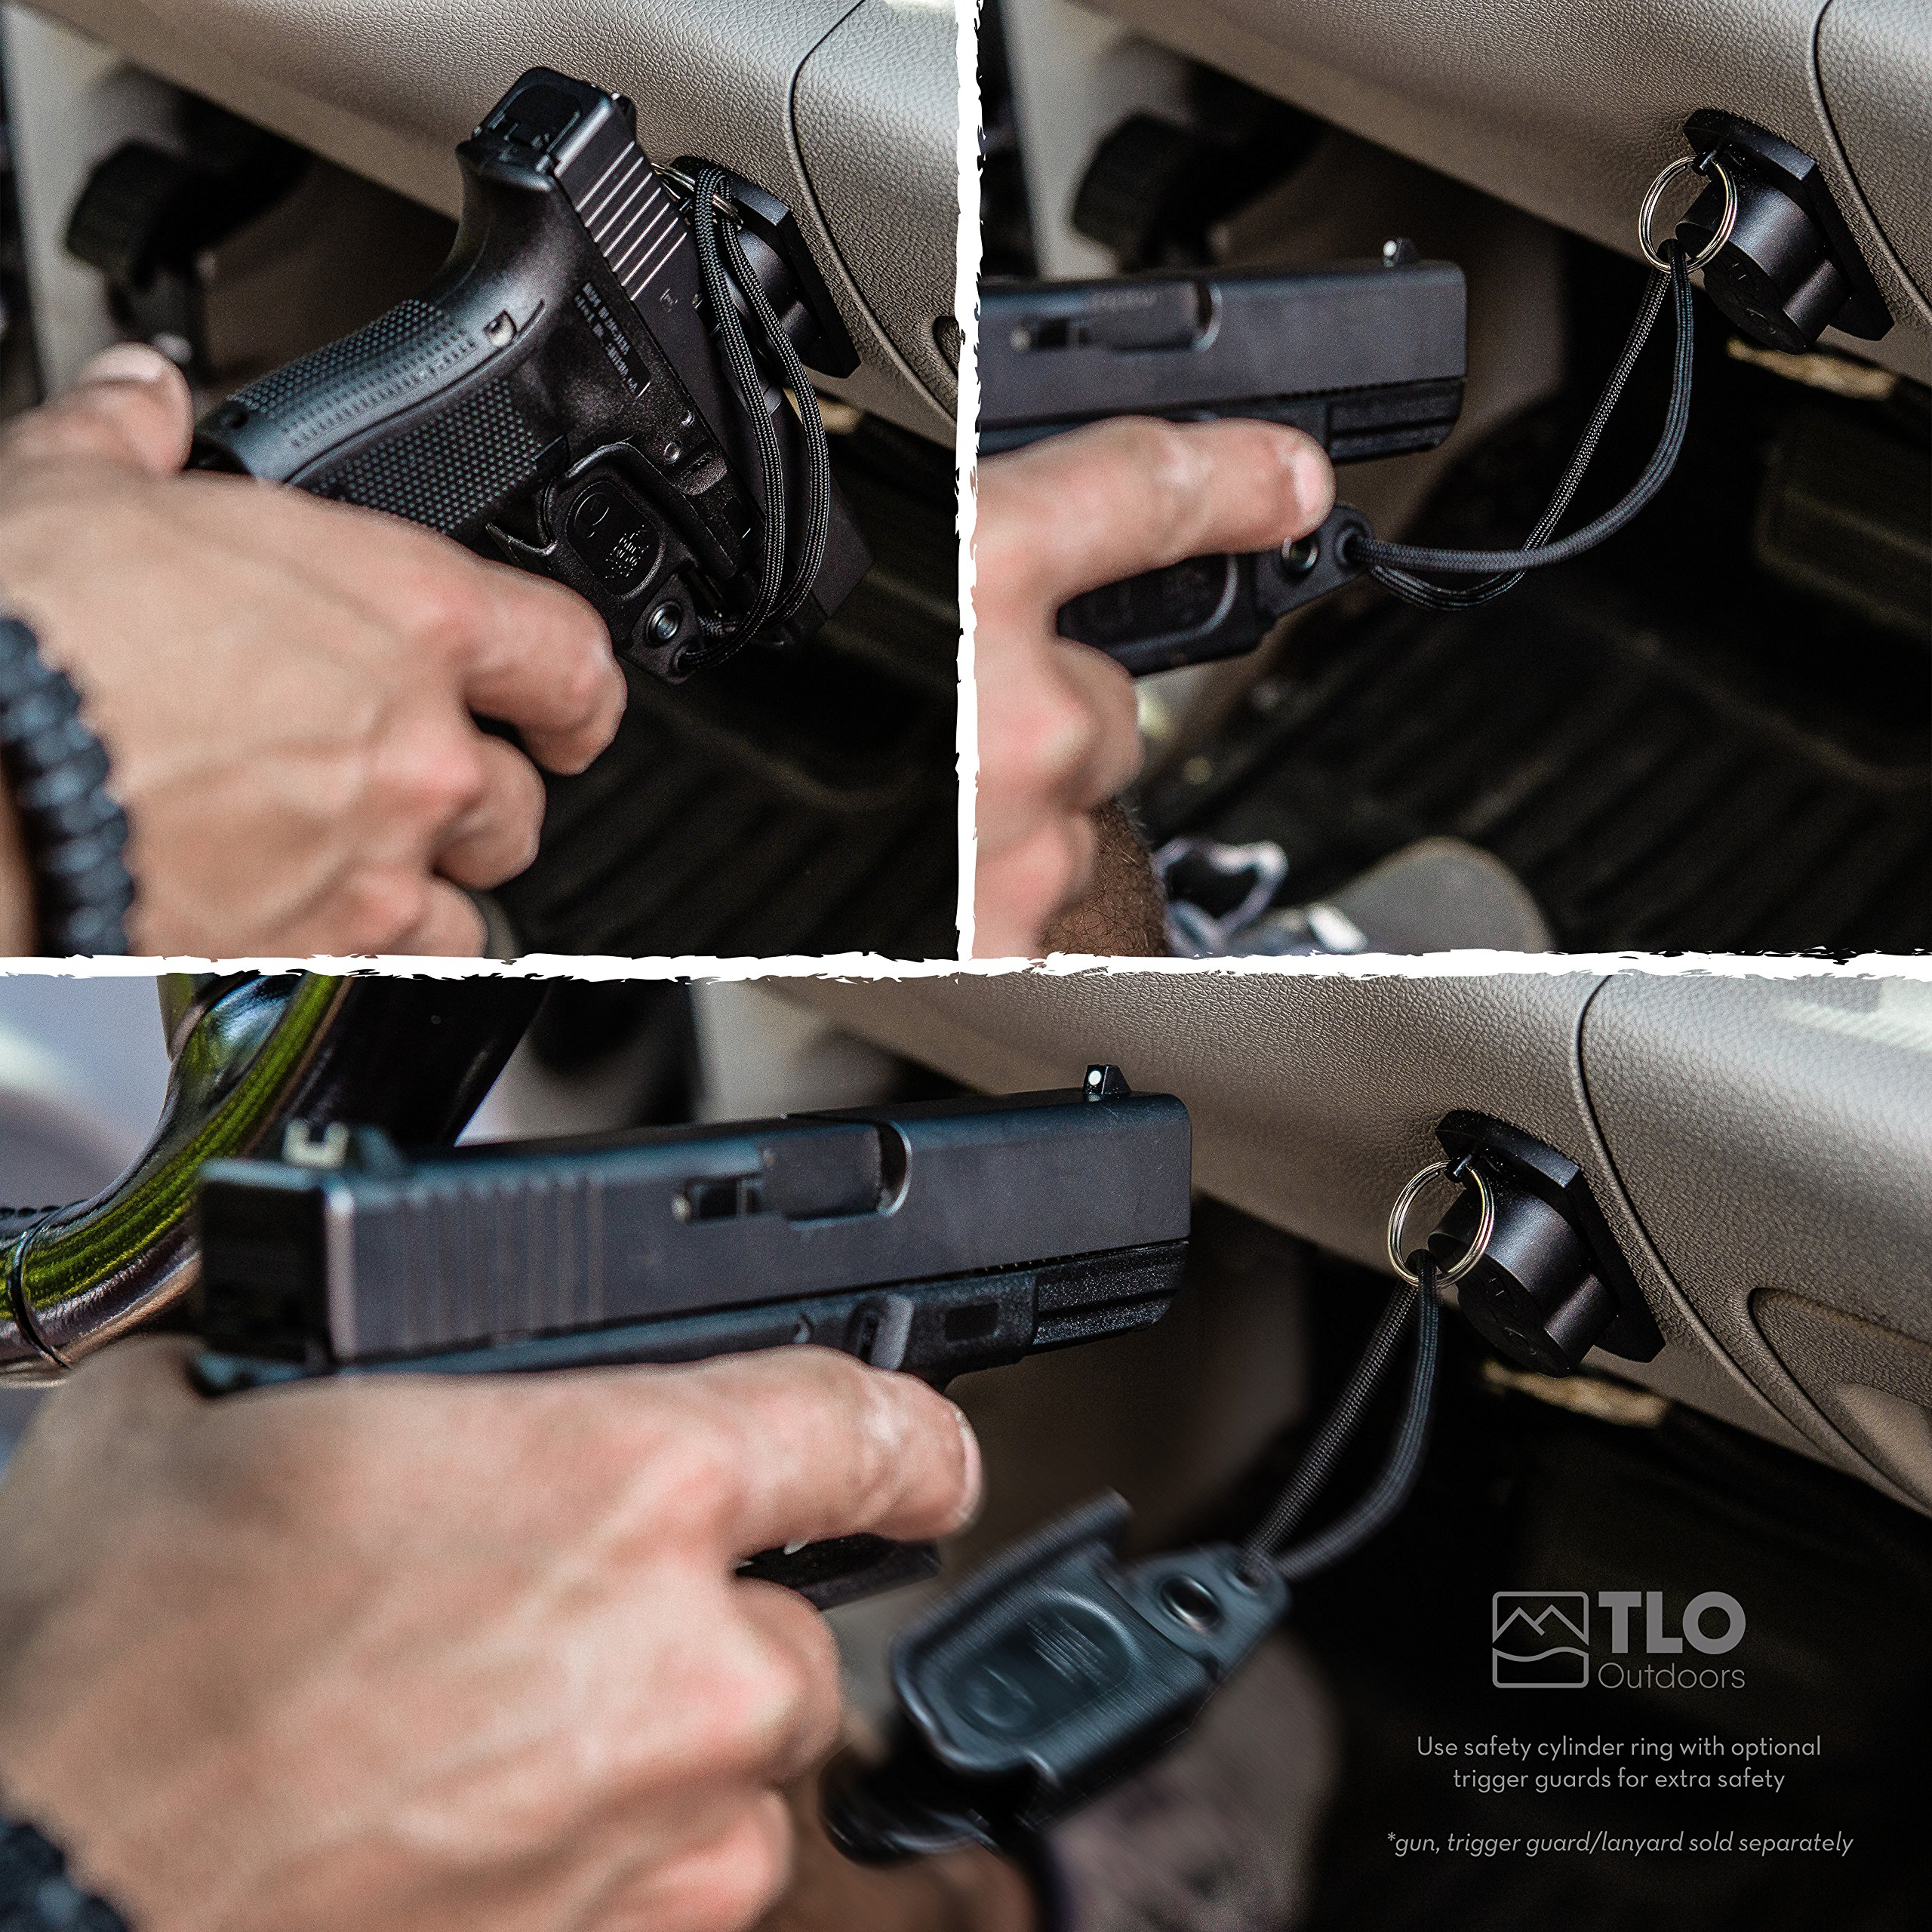 TLO Outdoors GunMag Gun Magnet [2-Pack] - Magnetic Gun Holster Mount for Car, Truck, Home, Office, Gun Safe with Exclusive Safety Cylinder by TLO Outdoors (Image #2)